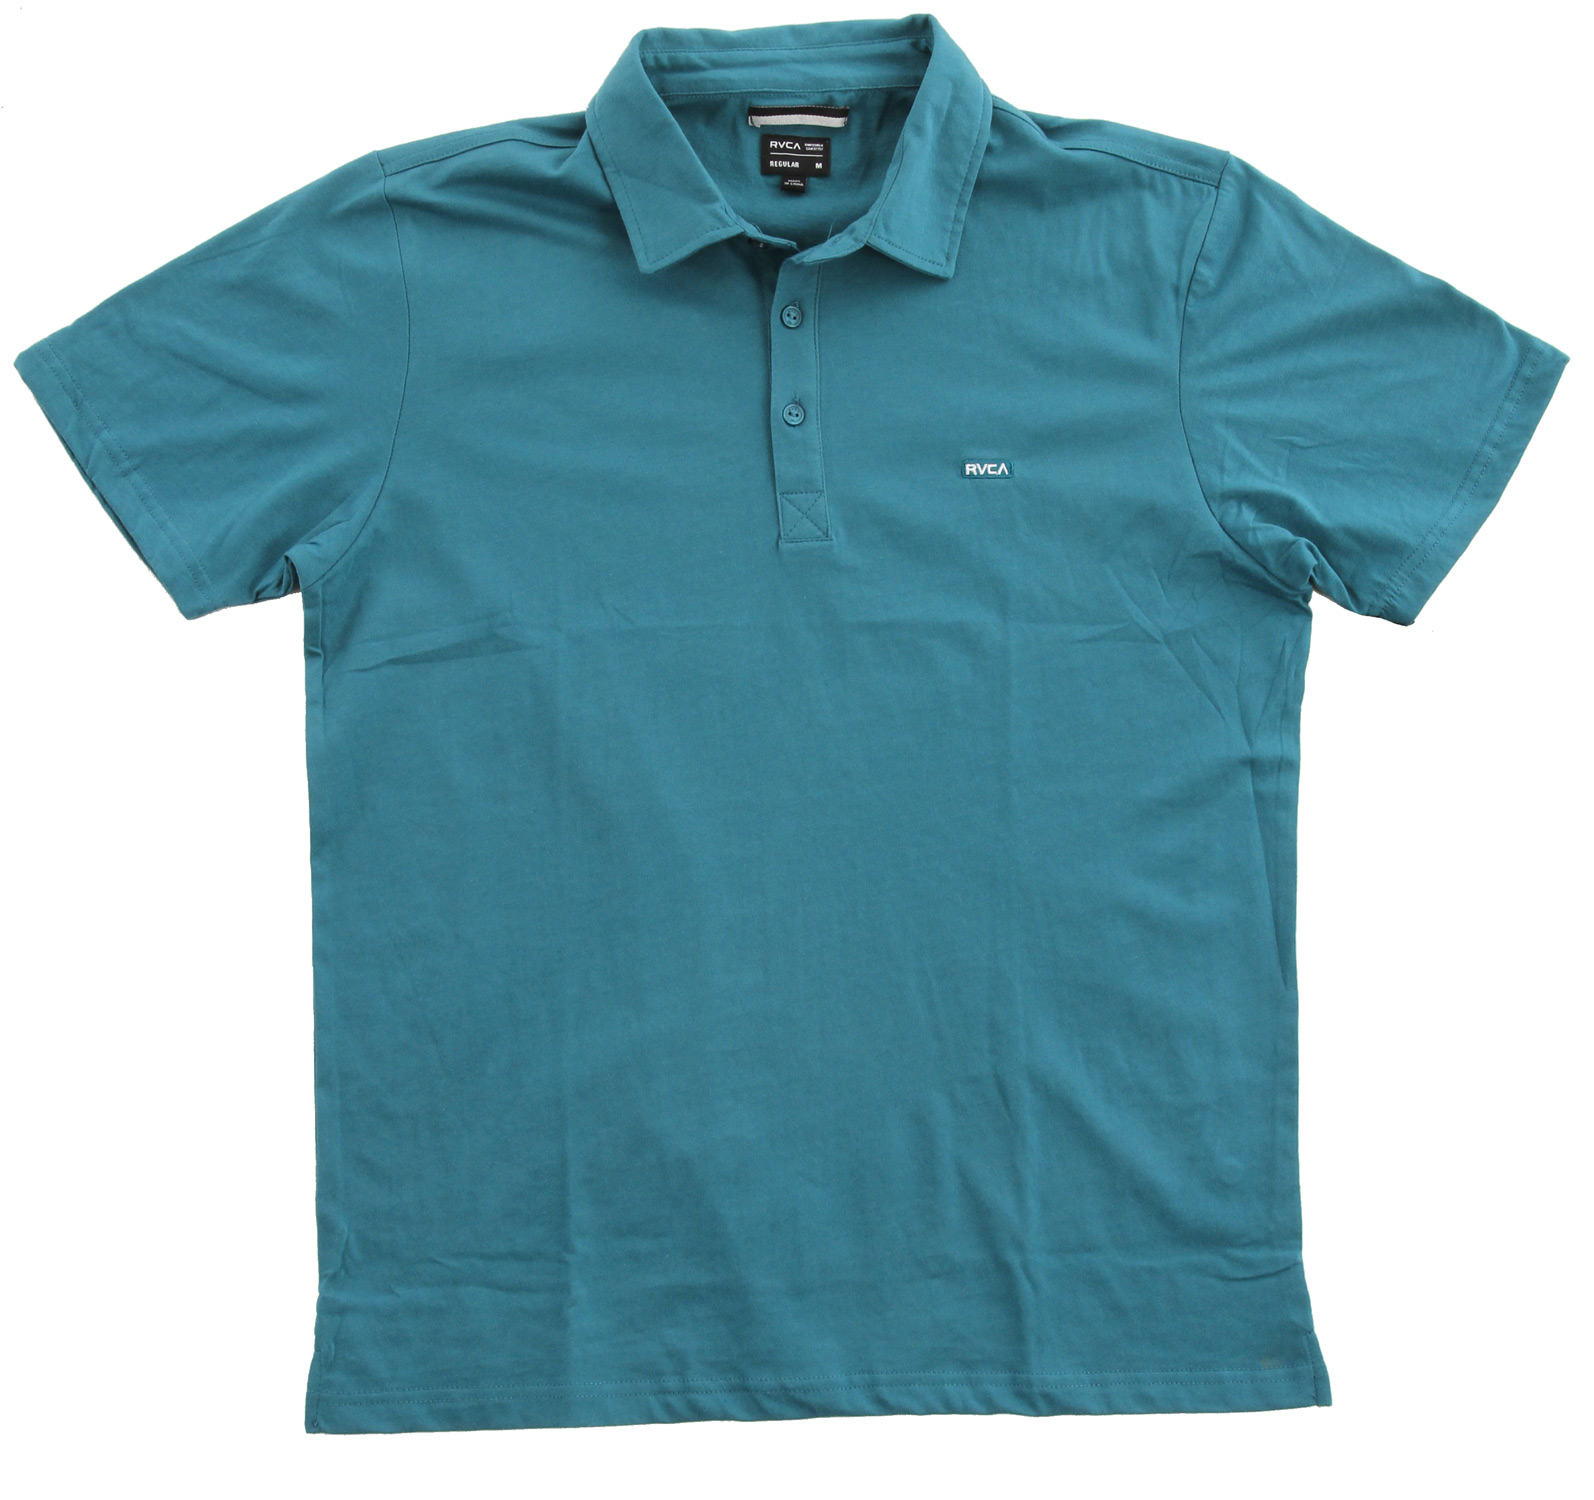 Key Features of the RVCA Sure Thing Polo: Regular Fit - 60% Cotton/40% Polyester Jersey Short sleeve polo RVCA embroidery patch at left chest and side slits at bottom hem - $22.95